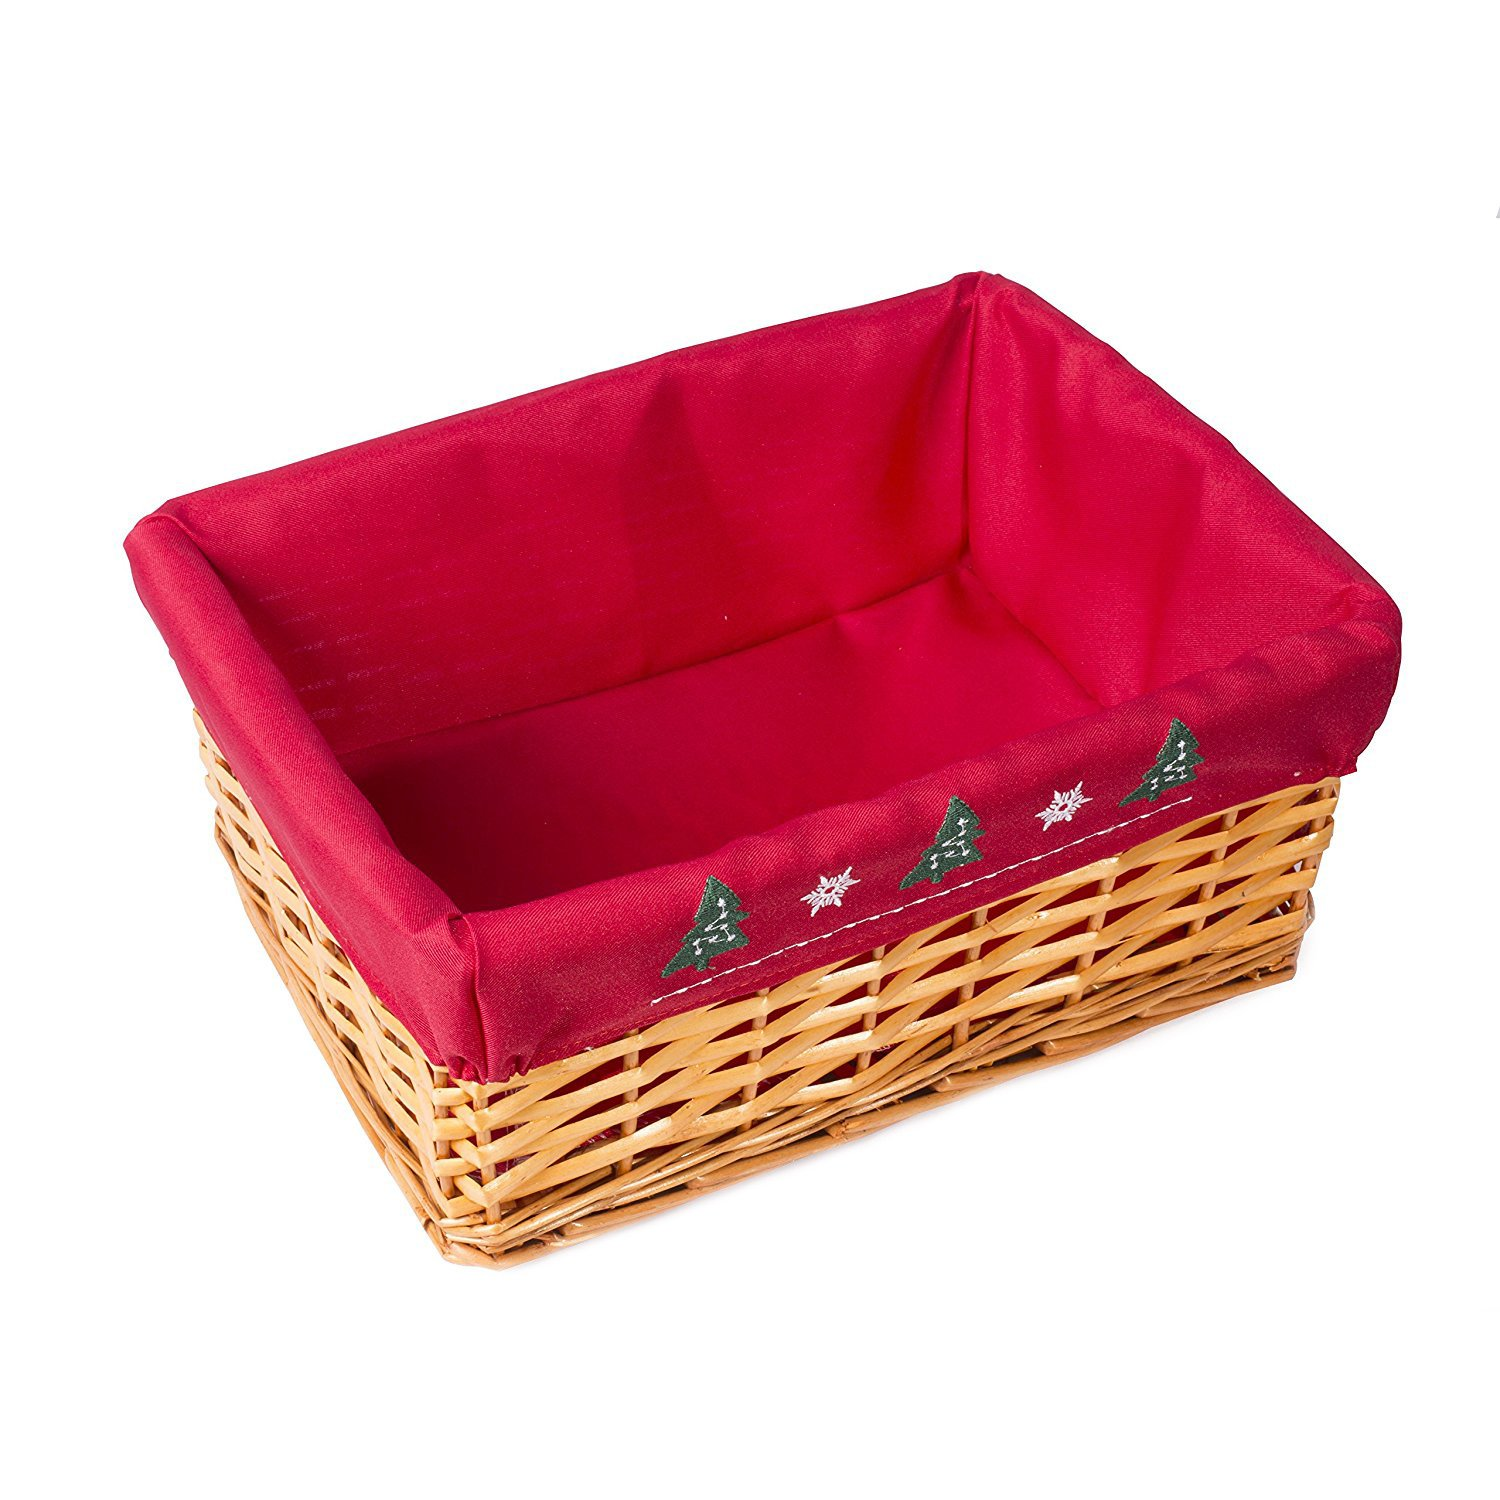 Red lined Honey Wicker Trays Retail Display Christmas Gift Hampers Two Sizes (Medium) Basic House Ltd